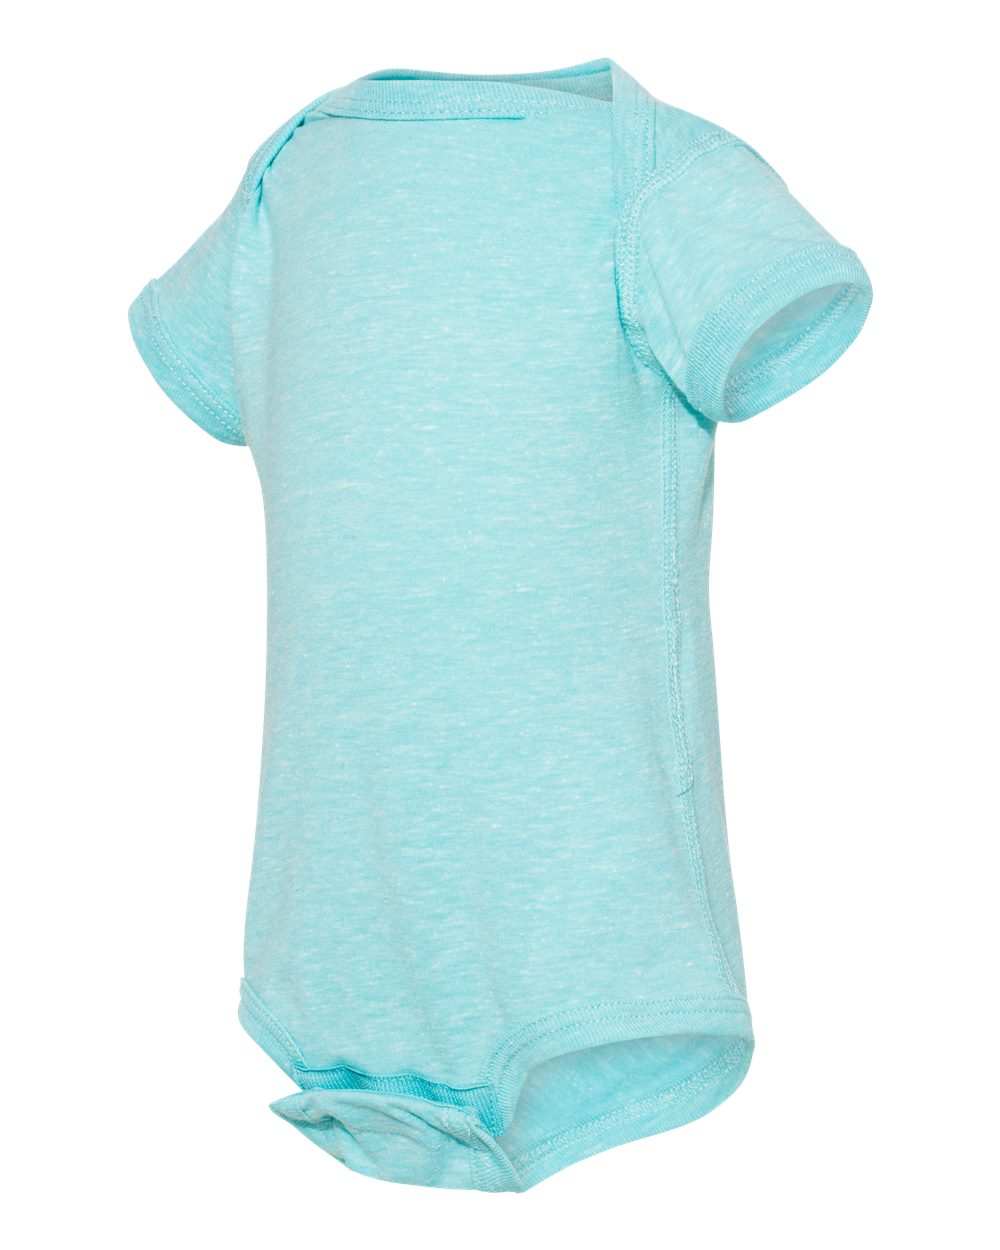 Rabbit Skins 4491 - Infant Harborside Melange Bodysuit